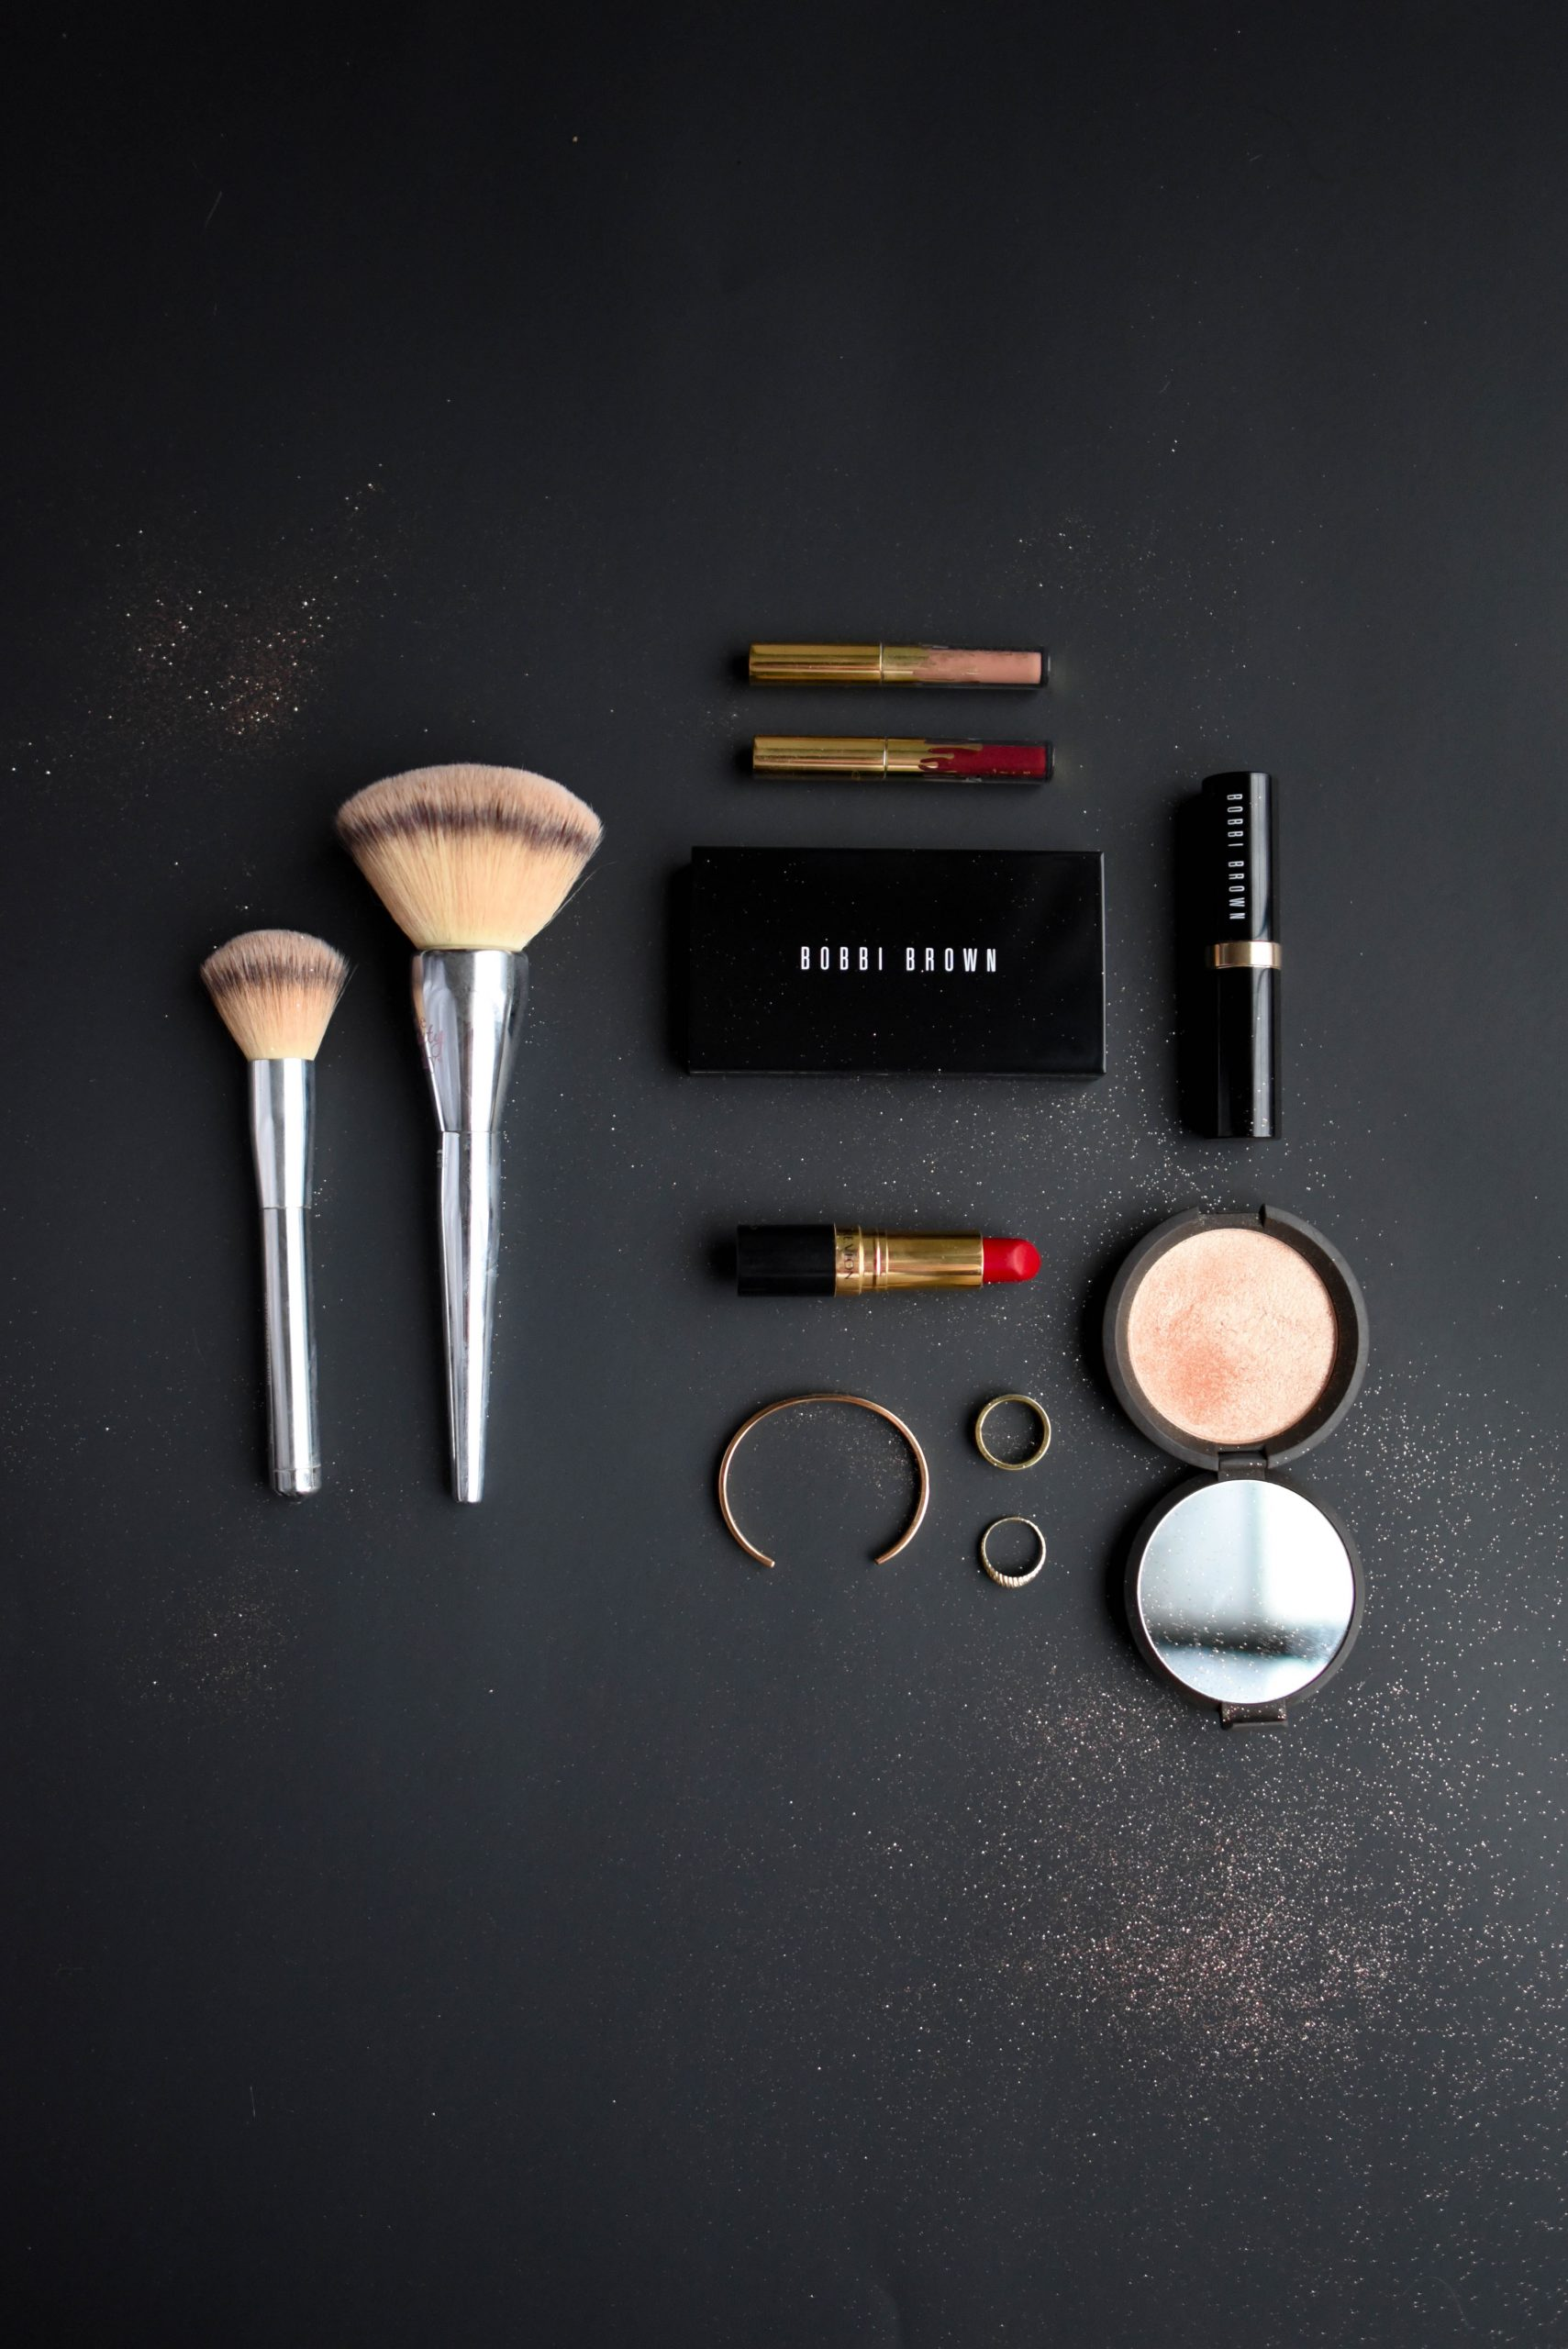 6 Tips on How to Use Your Cosmetics Safely